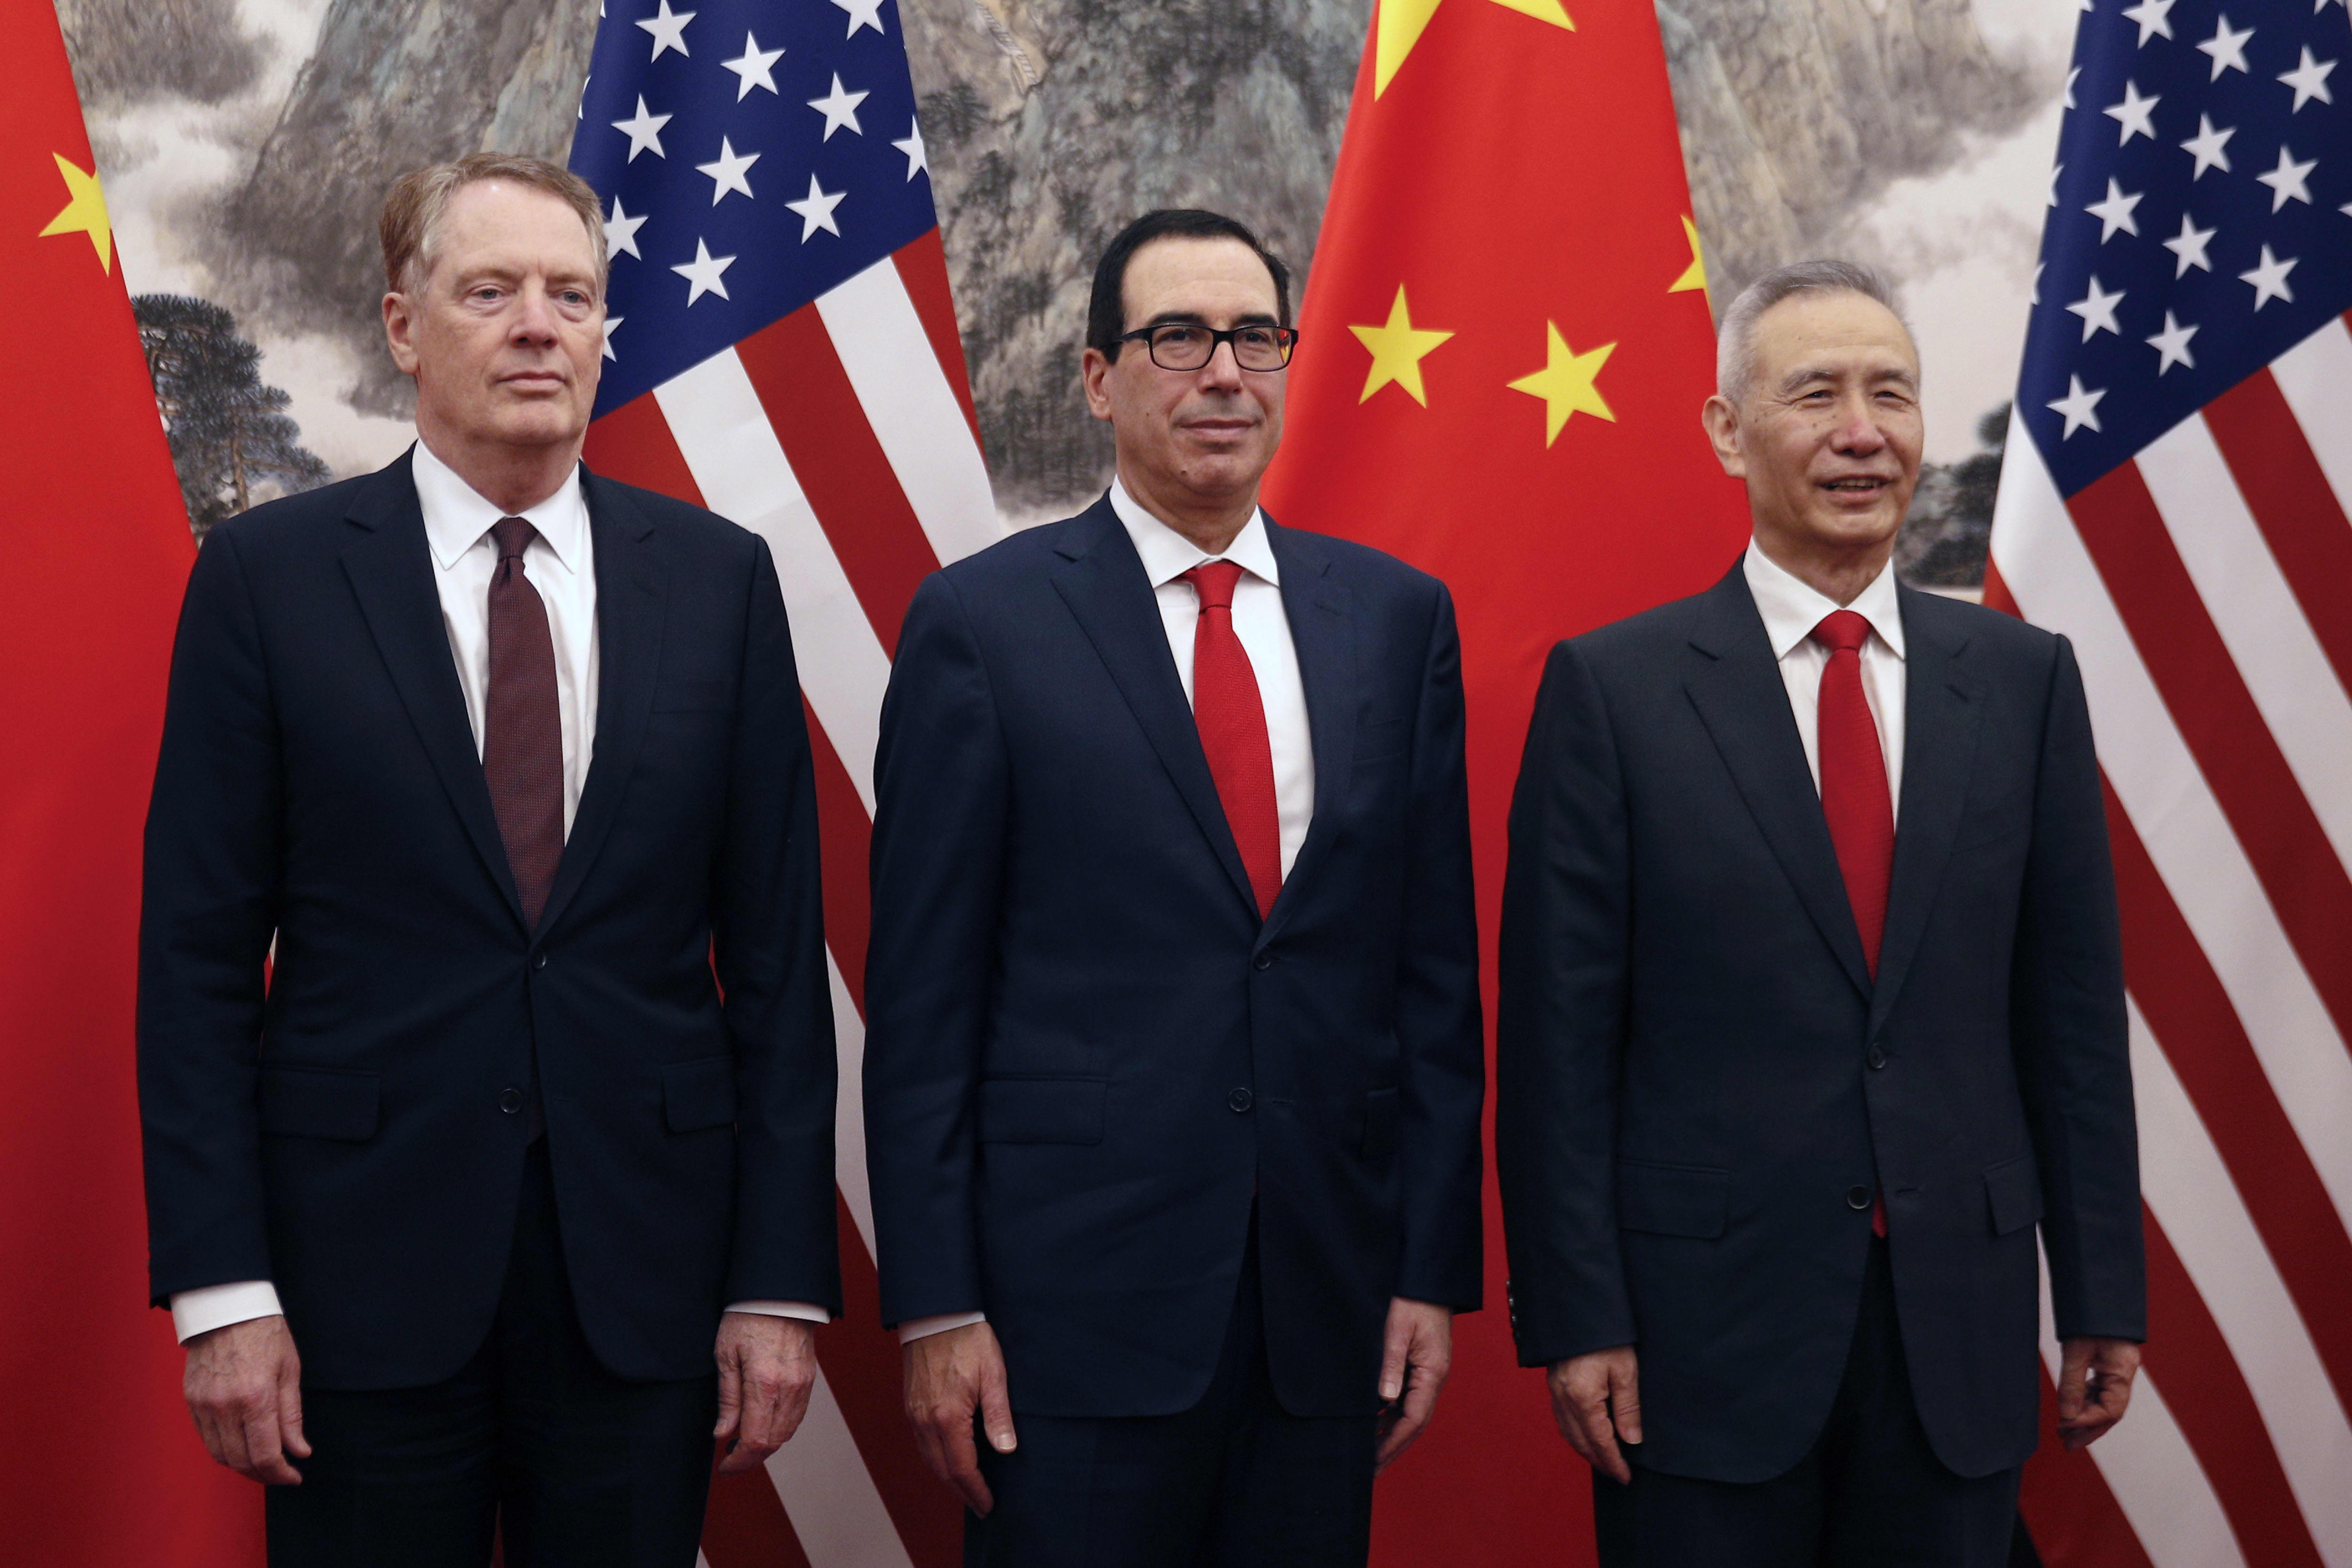 Trump officials say China pursuing 'blame game' on breakdown of trade talks